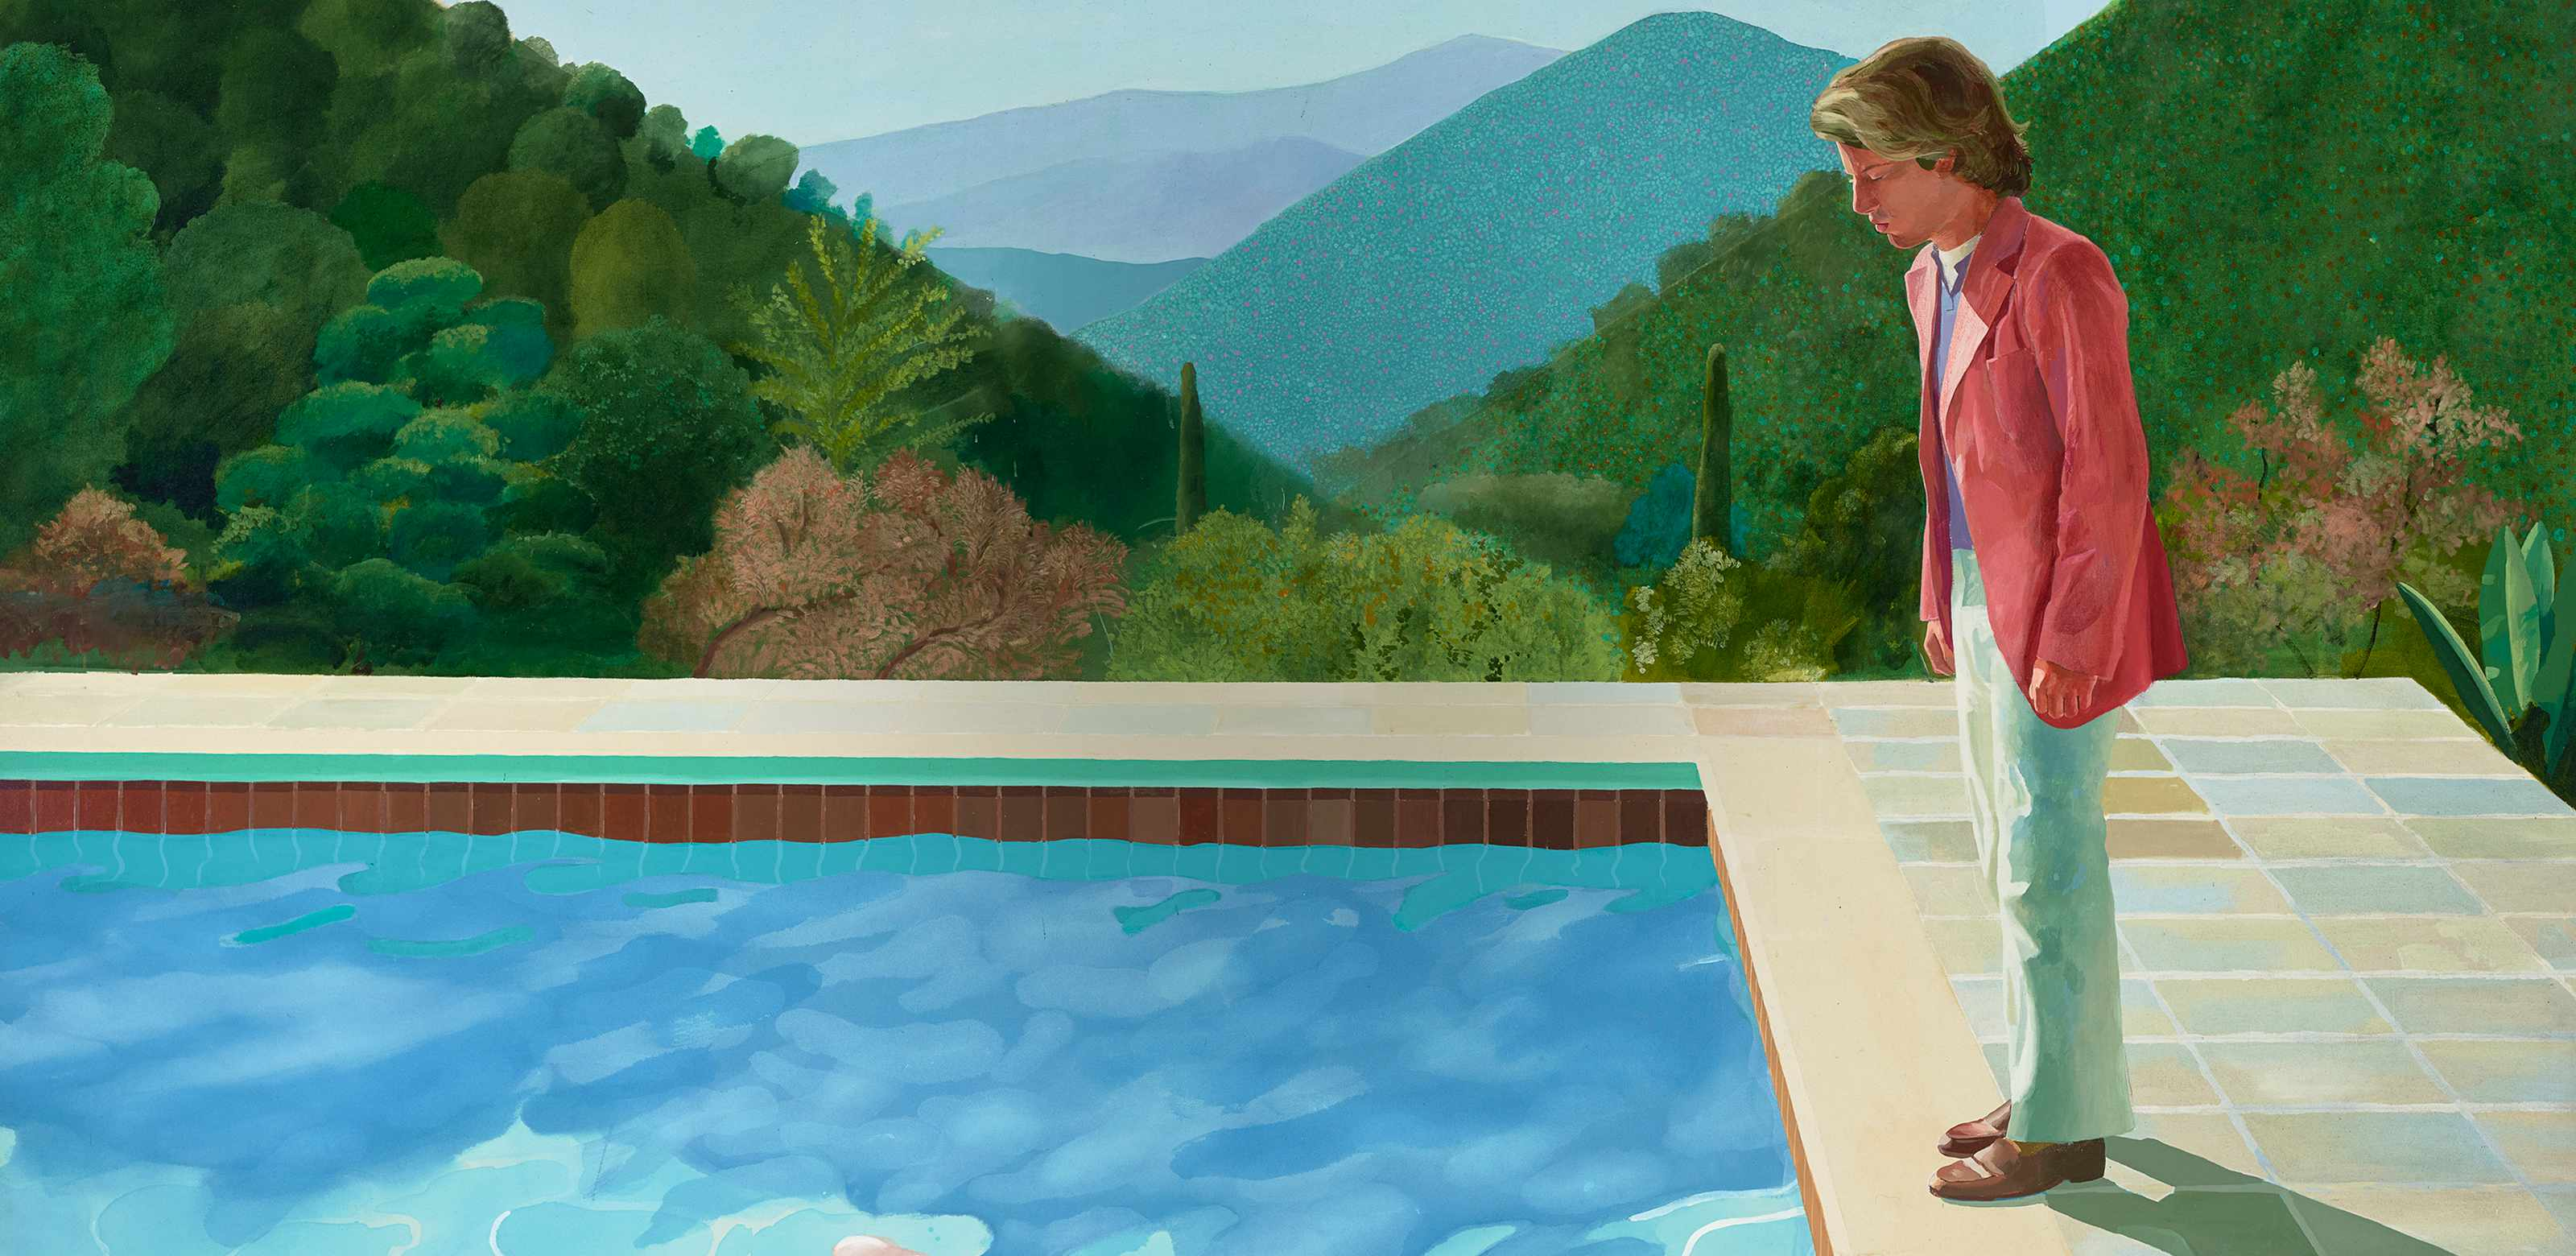 David Hockney: Portrait of an Artist (Pool with Two Figures) 1972